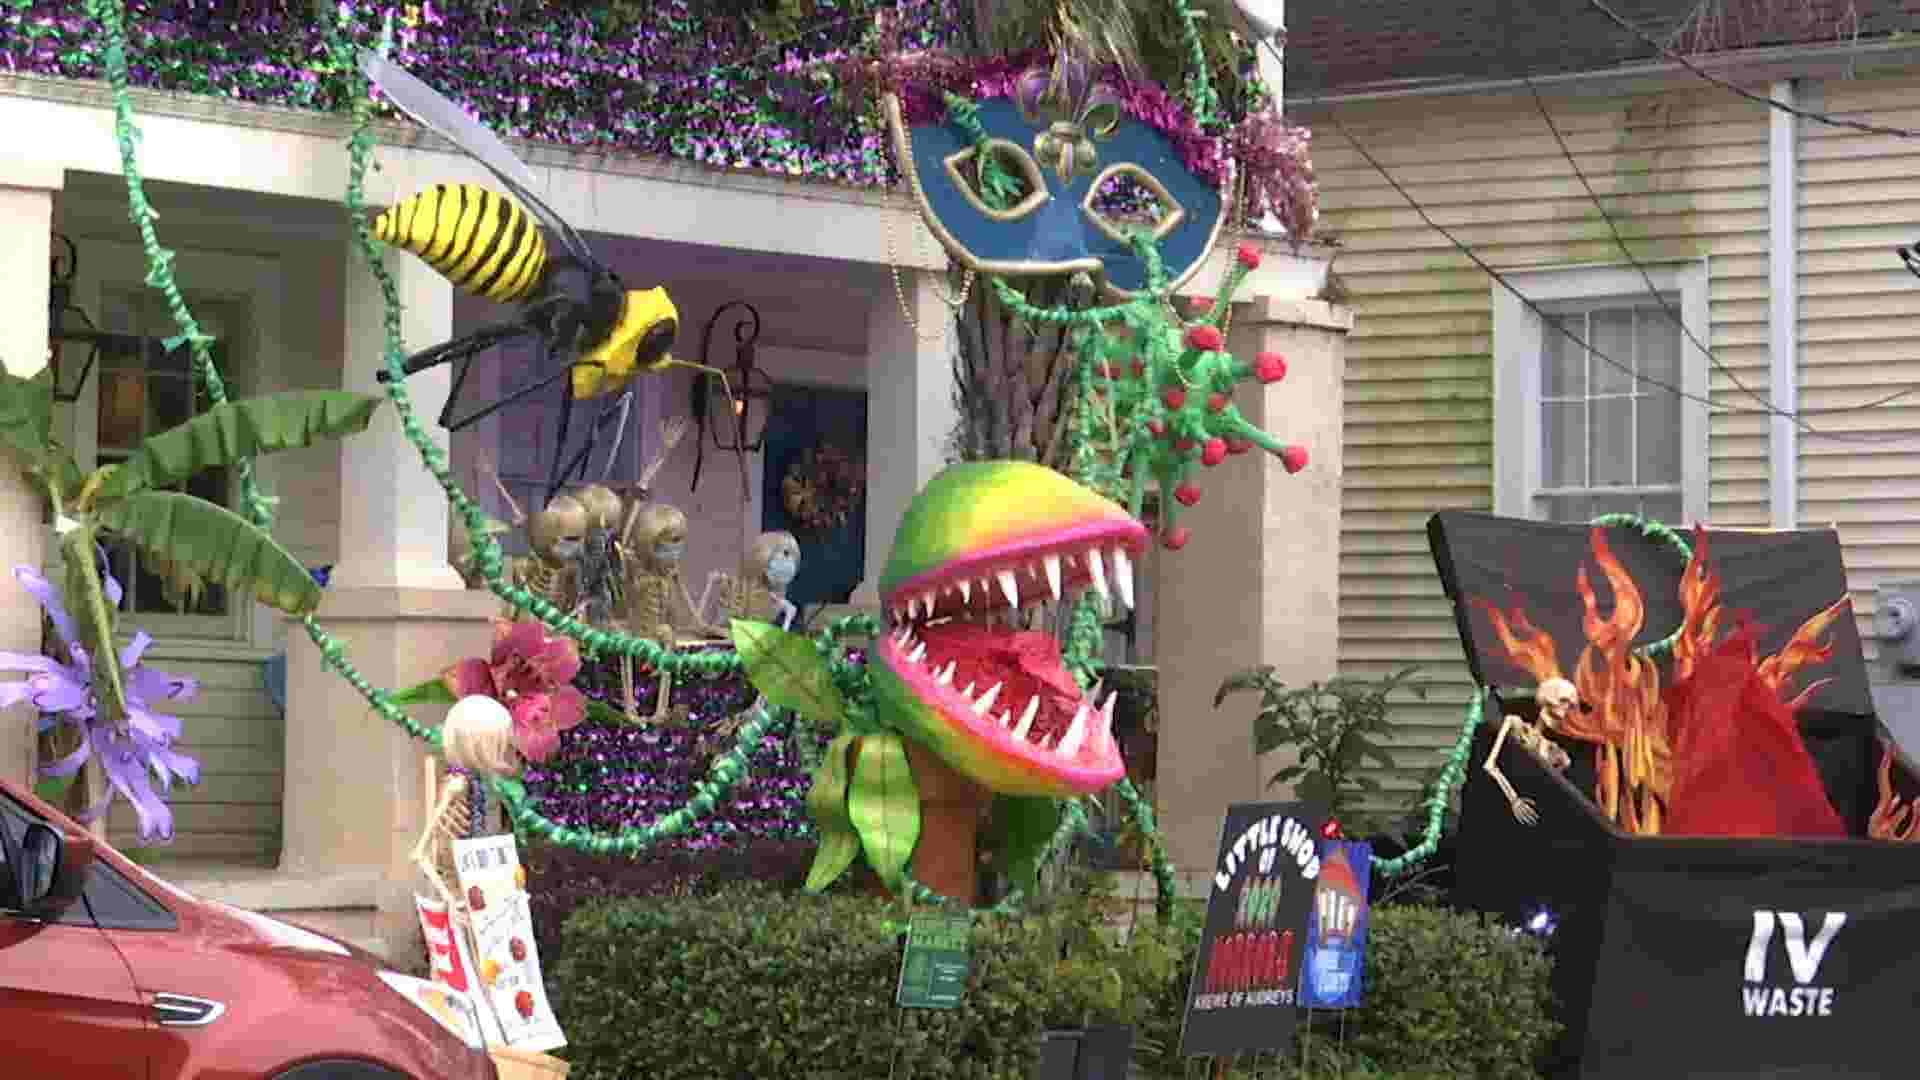 mardi-gras-marked-by-house-floats-in-new-orleans.jpg